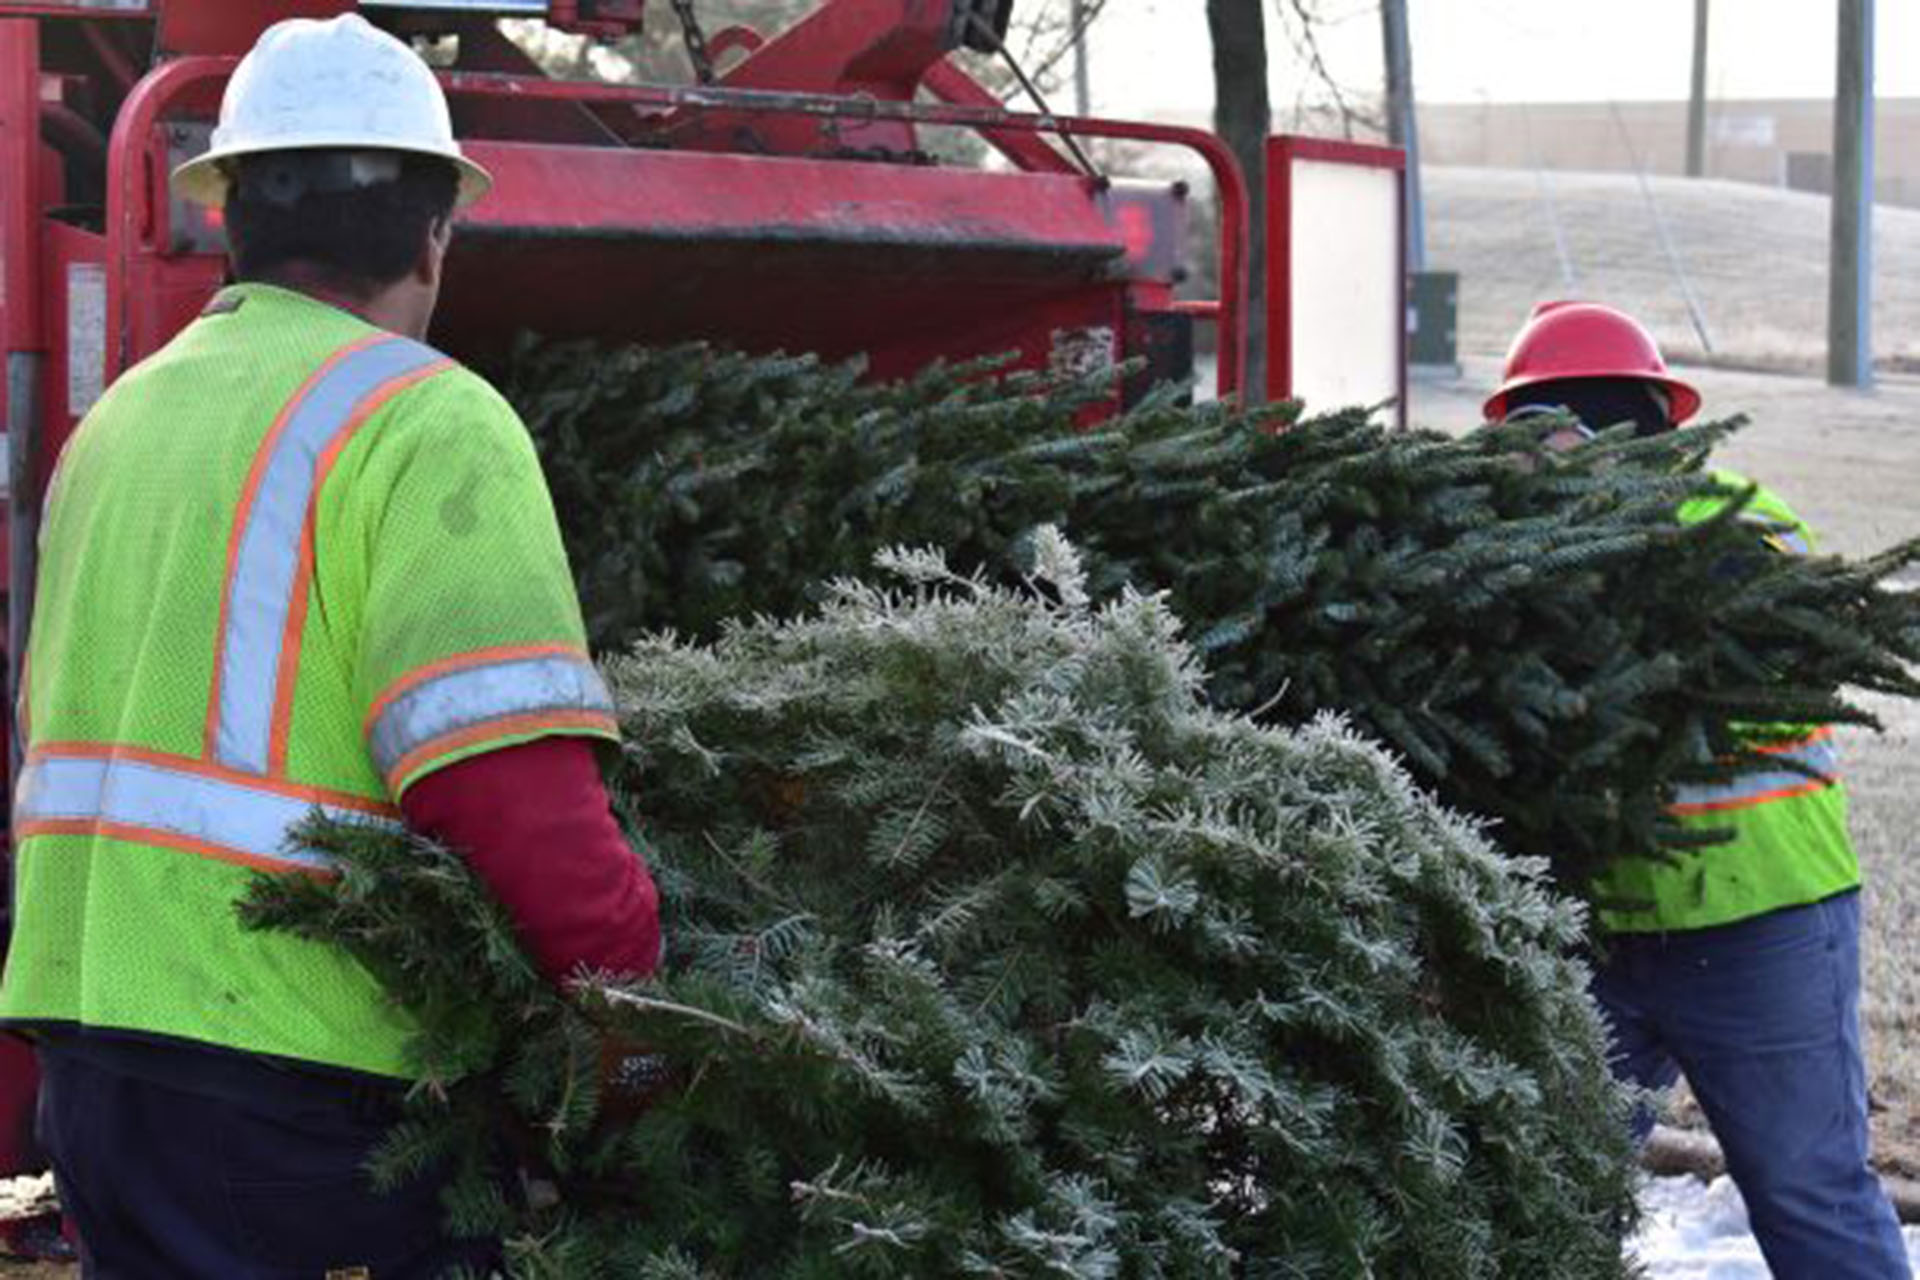 Recycling available for trees, wreaths